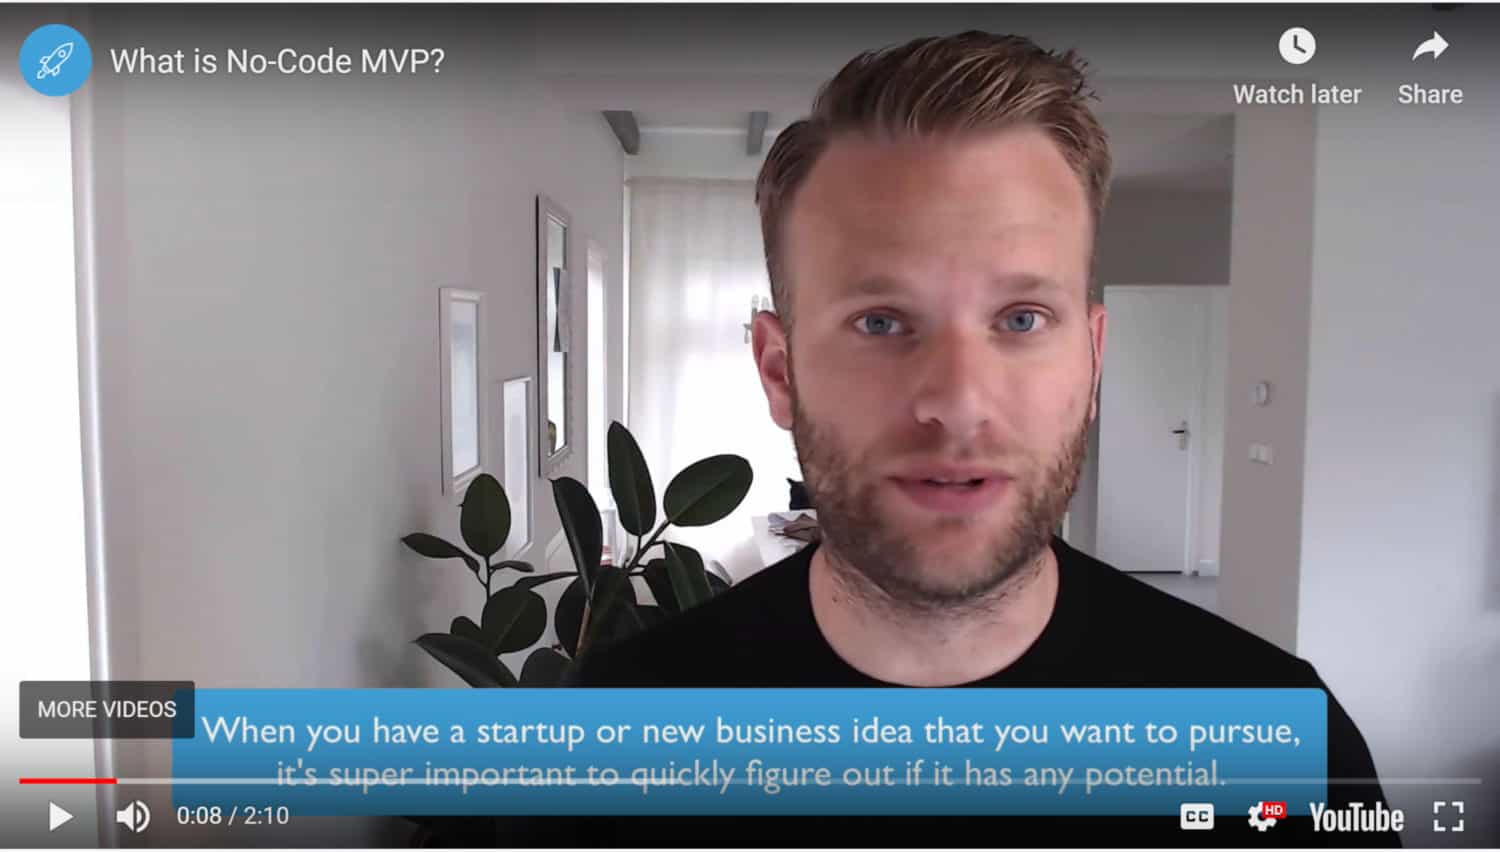 How Bram Kanstein Launched No-Code MVP and Earned $8,000 in 14-Days